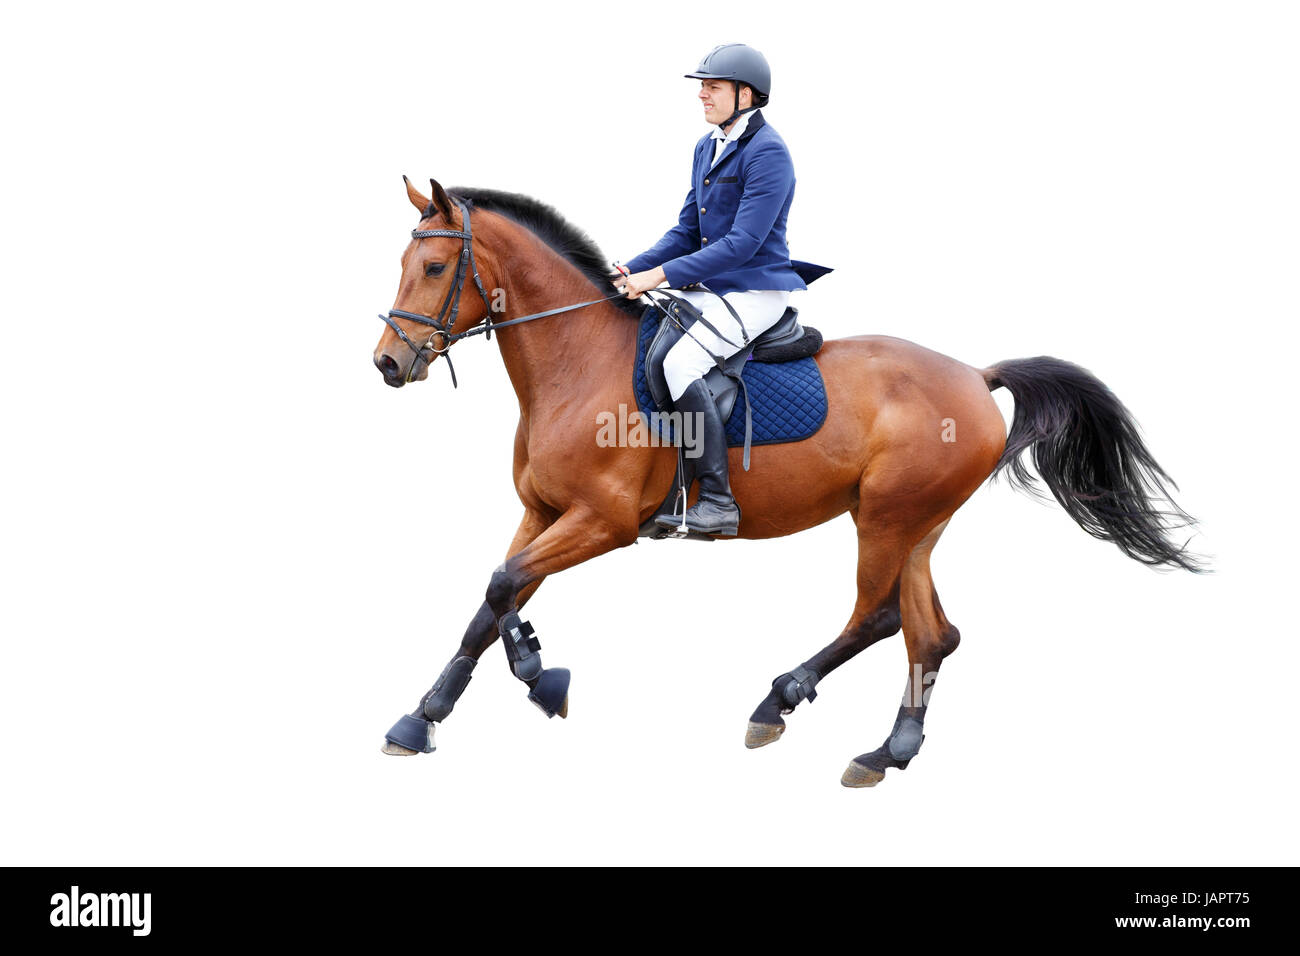 Young Rider Man In Helmet On Bay Horse Isolated On White Background Stock Photo Alamy